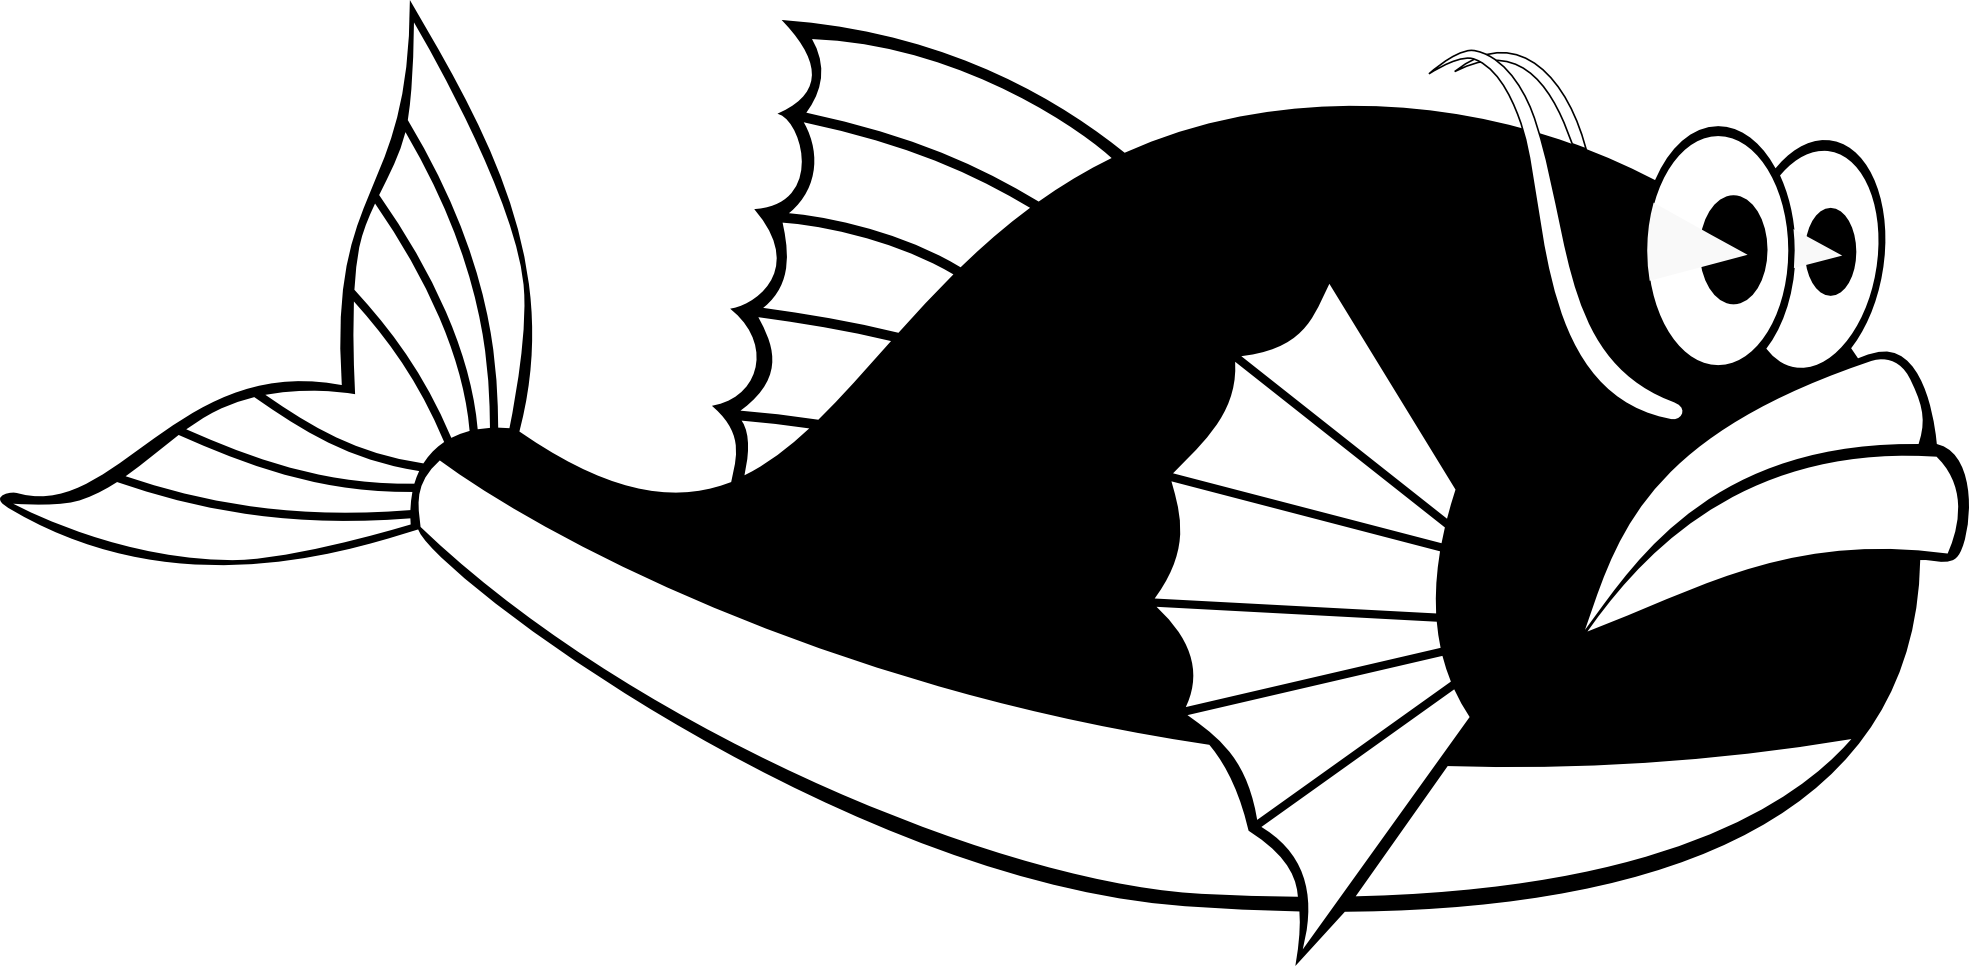 Free Whale Clipart Black And White